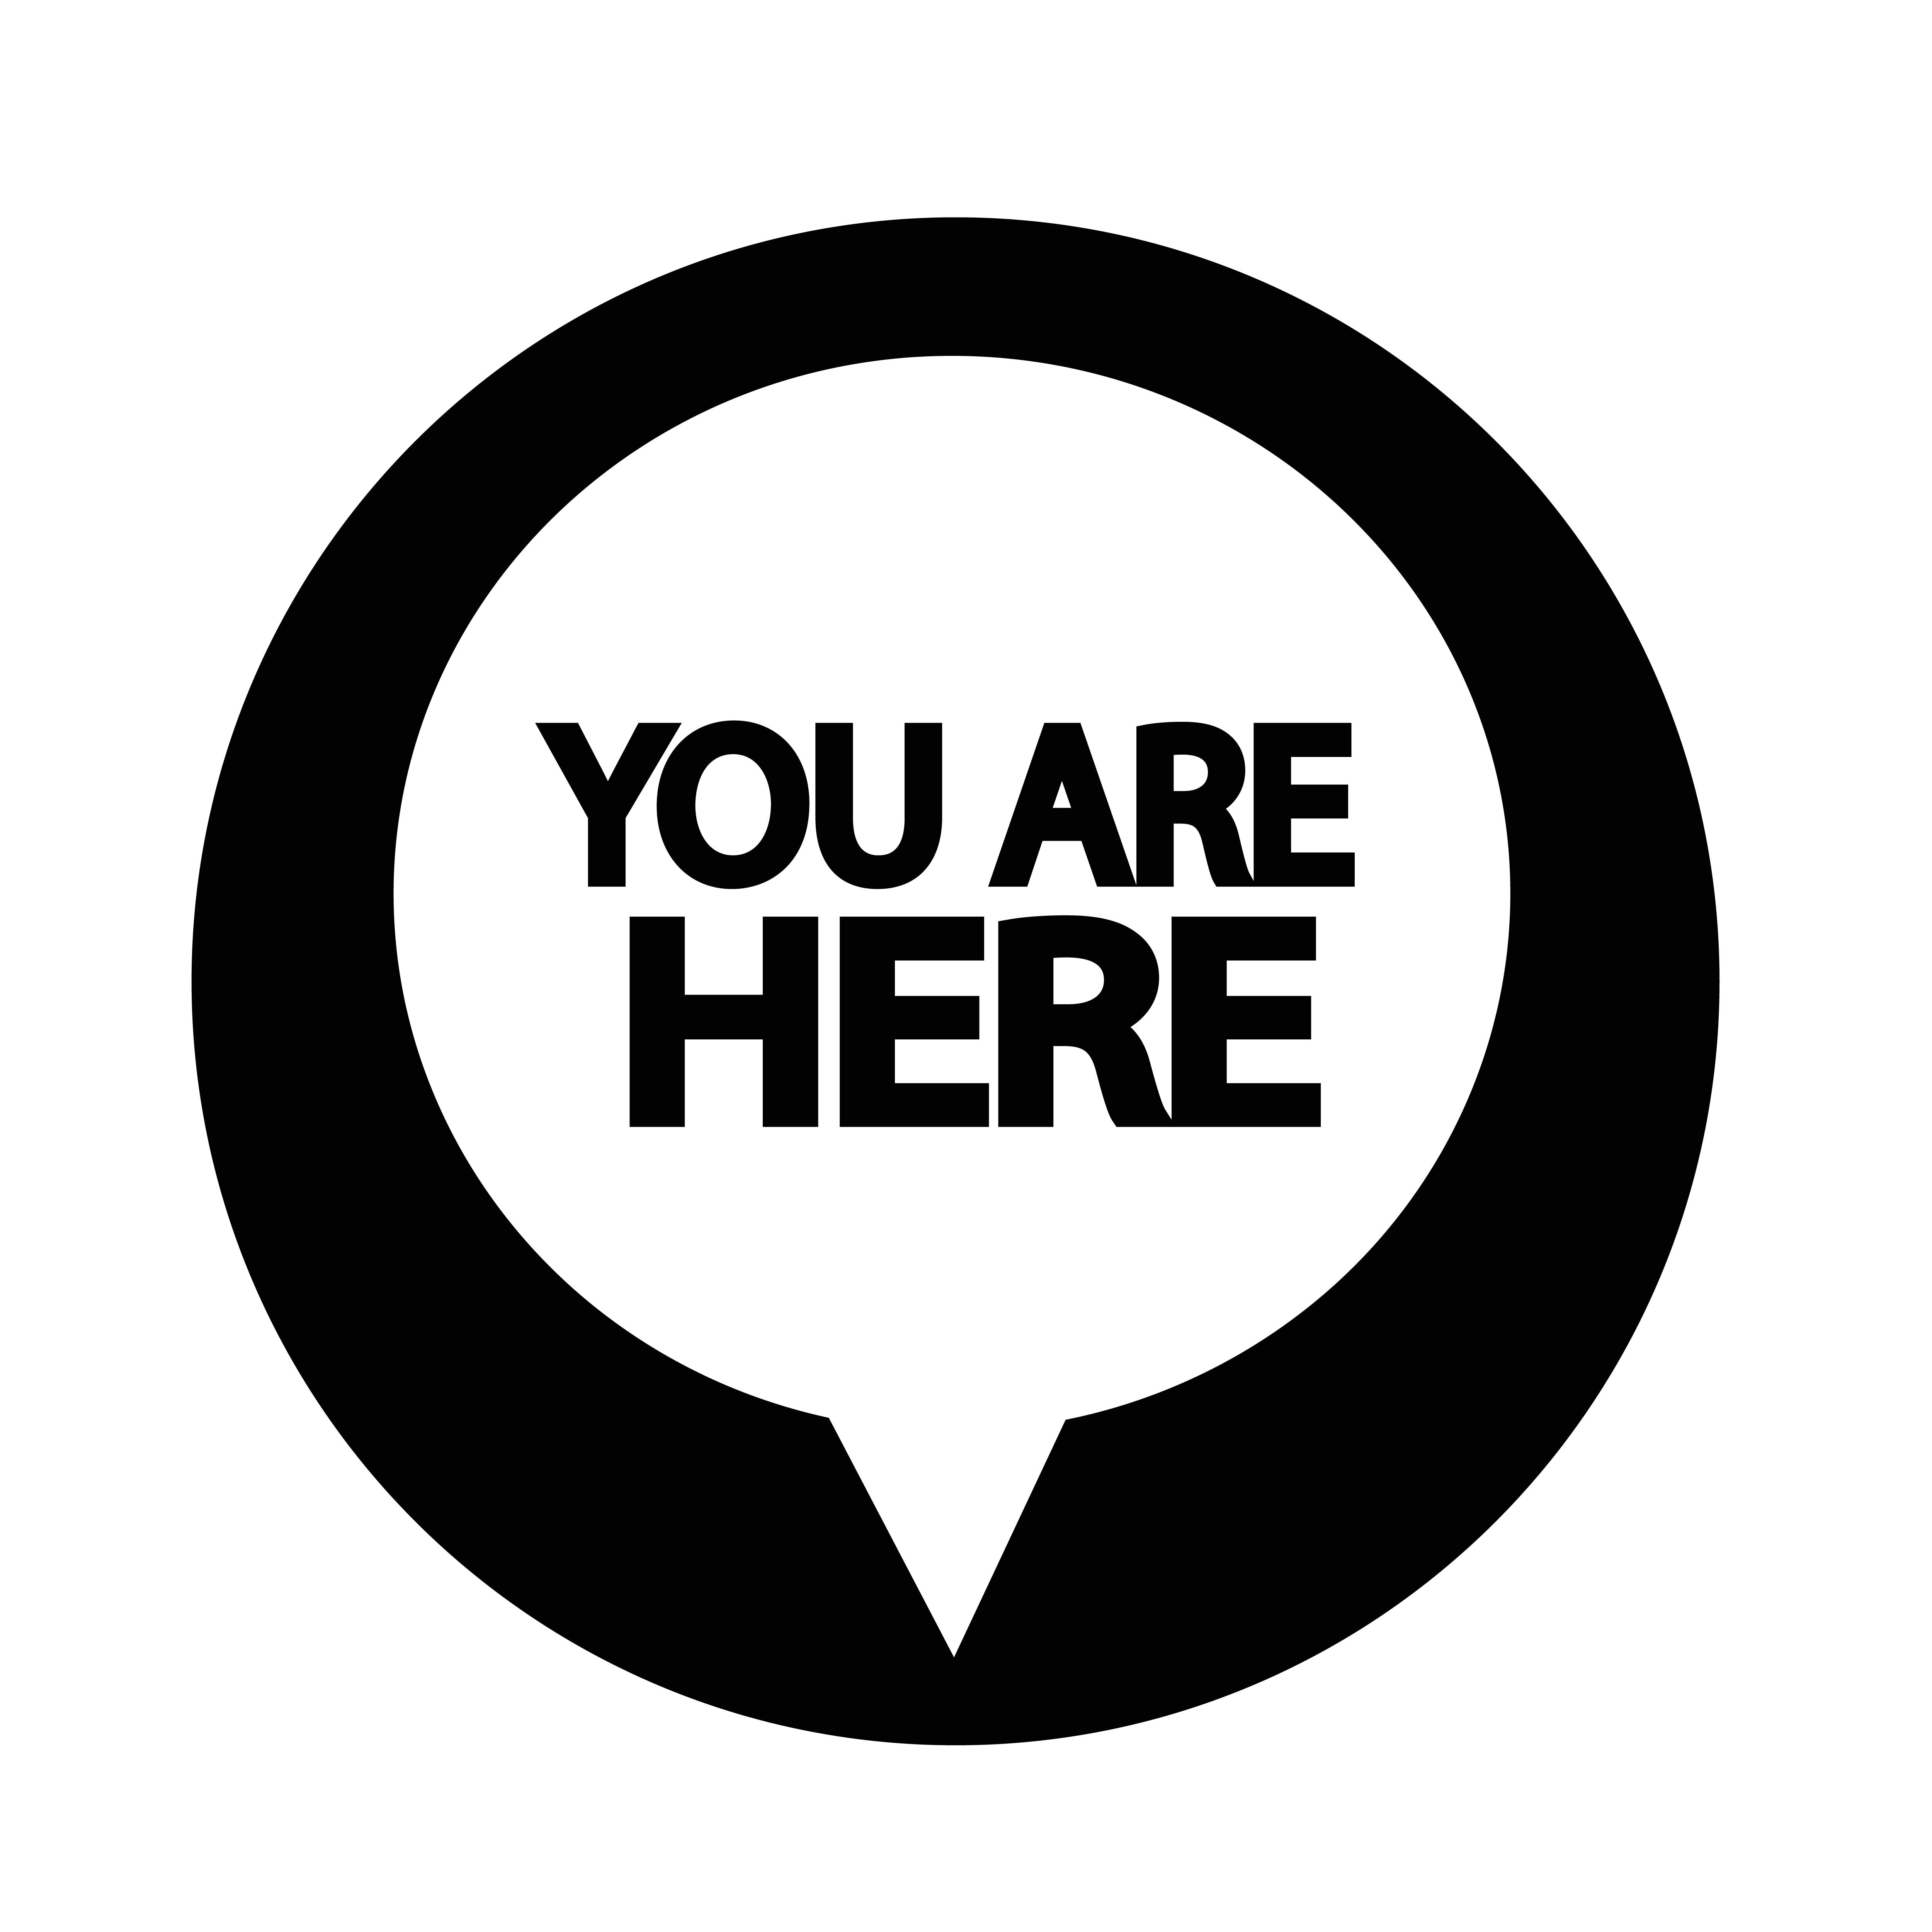 You are here icon - Download Free Vectors, Clipart ...